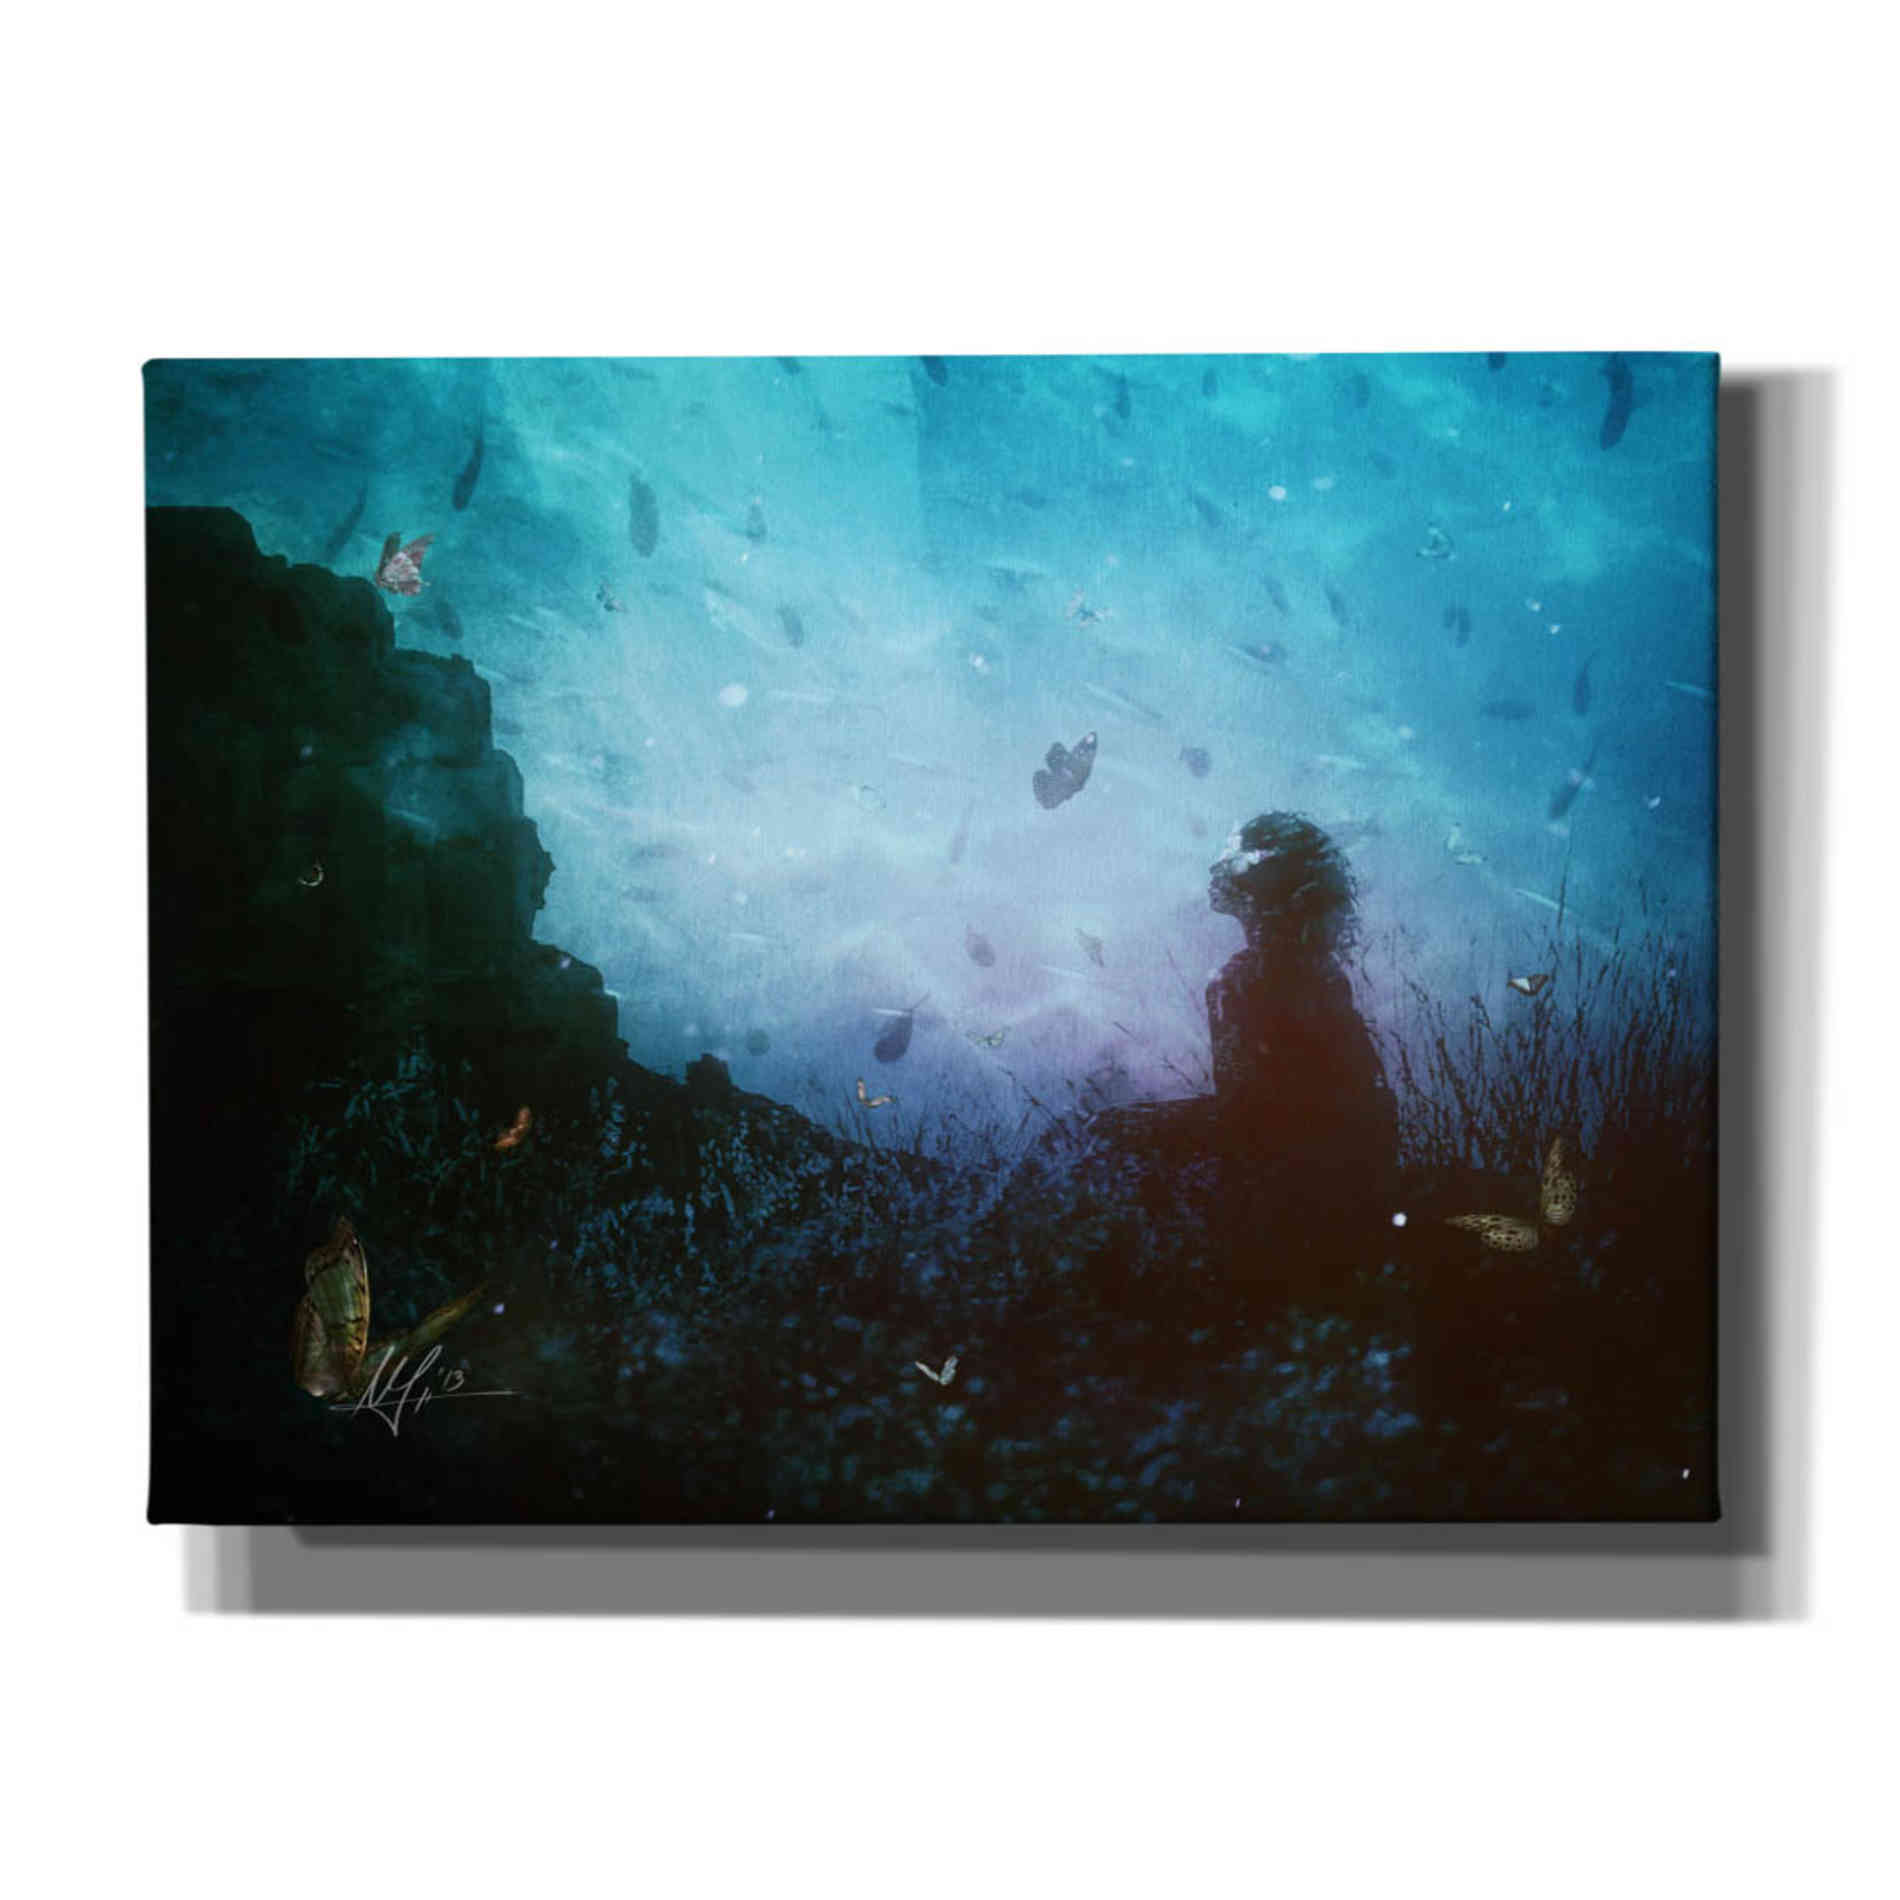 Cortesi Home 'Shattered Memories' by Mario Sanchez Nevado, Canvas Wall Art,Size A Landscape